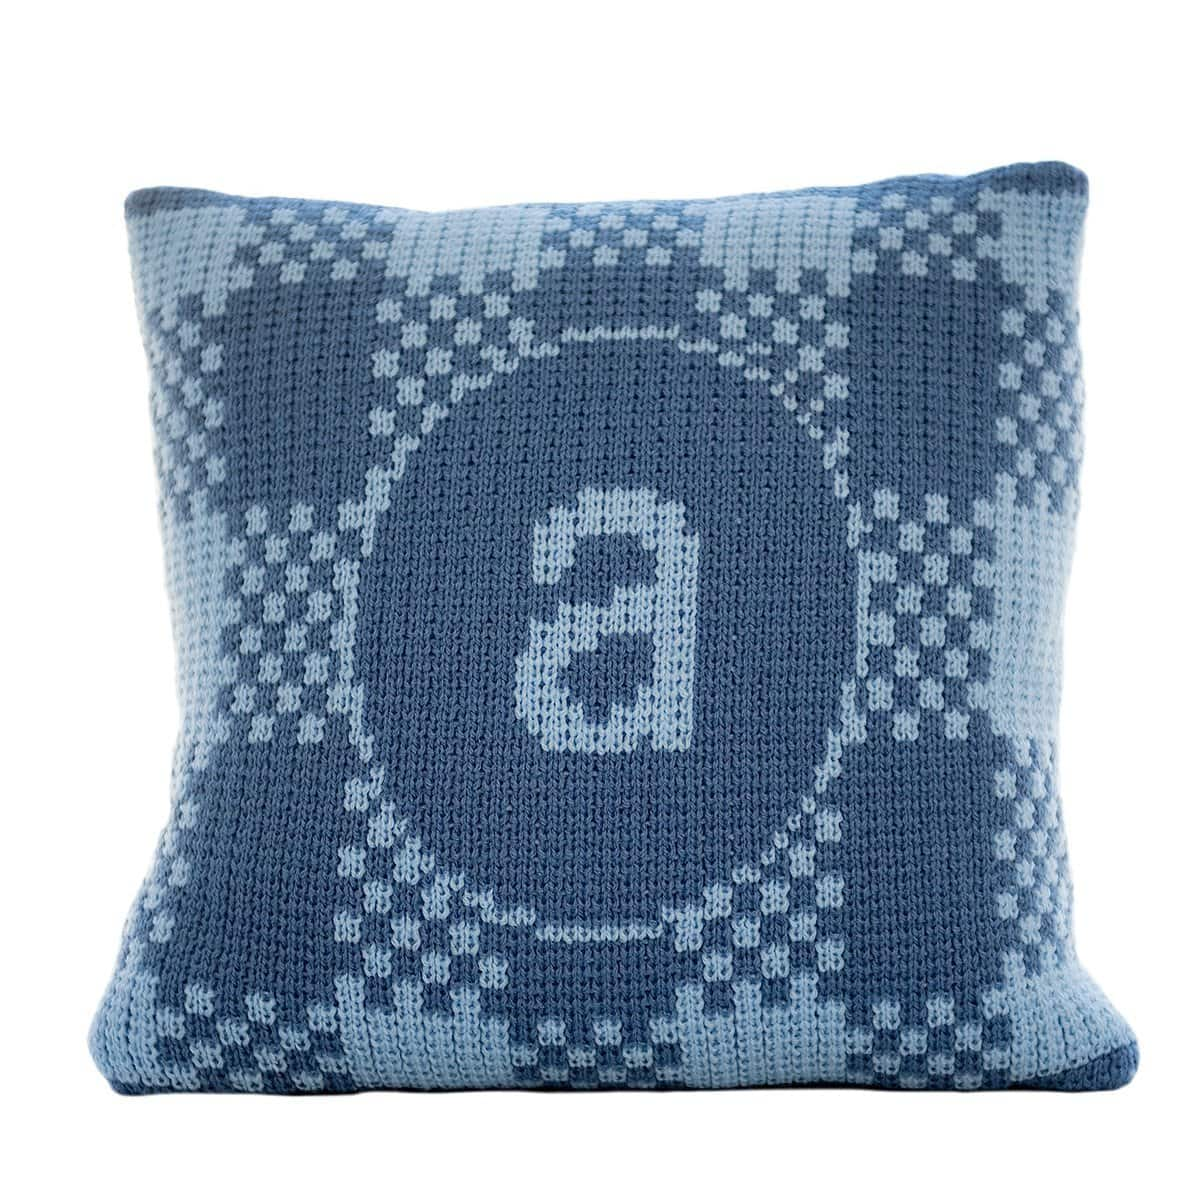 Gingham Pillow with Single Initial Personalized Pillow-Pillow-Butterscotch Blankees-Jack and Jill Boutique